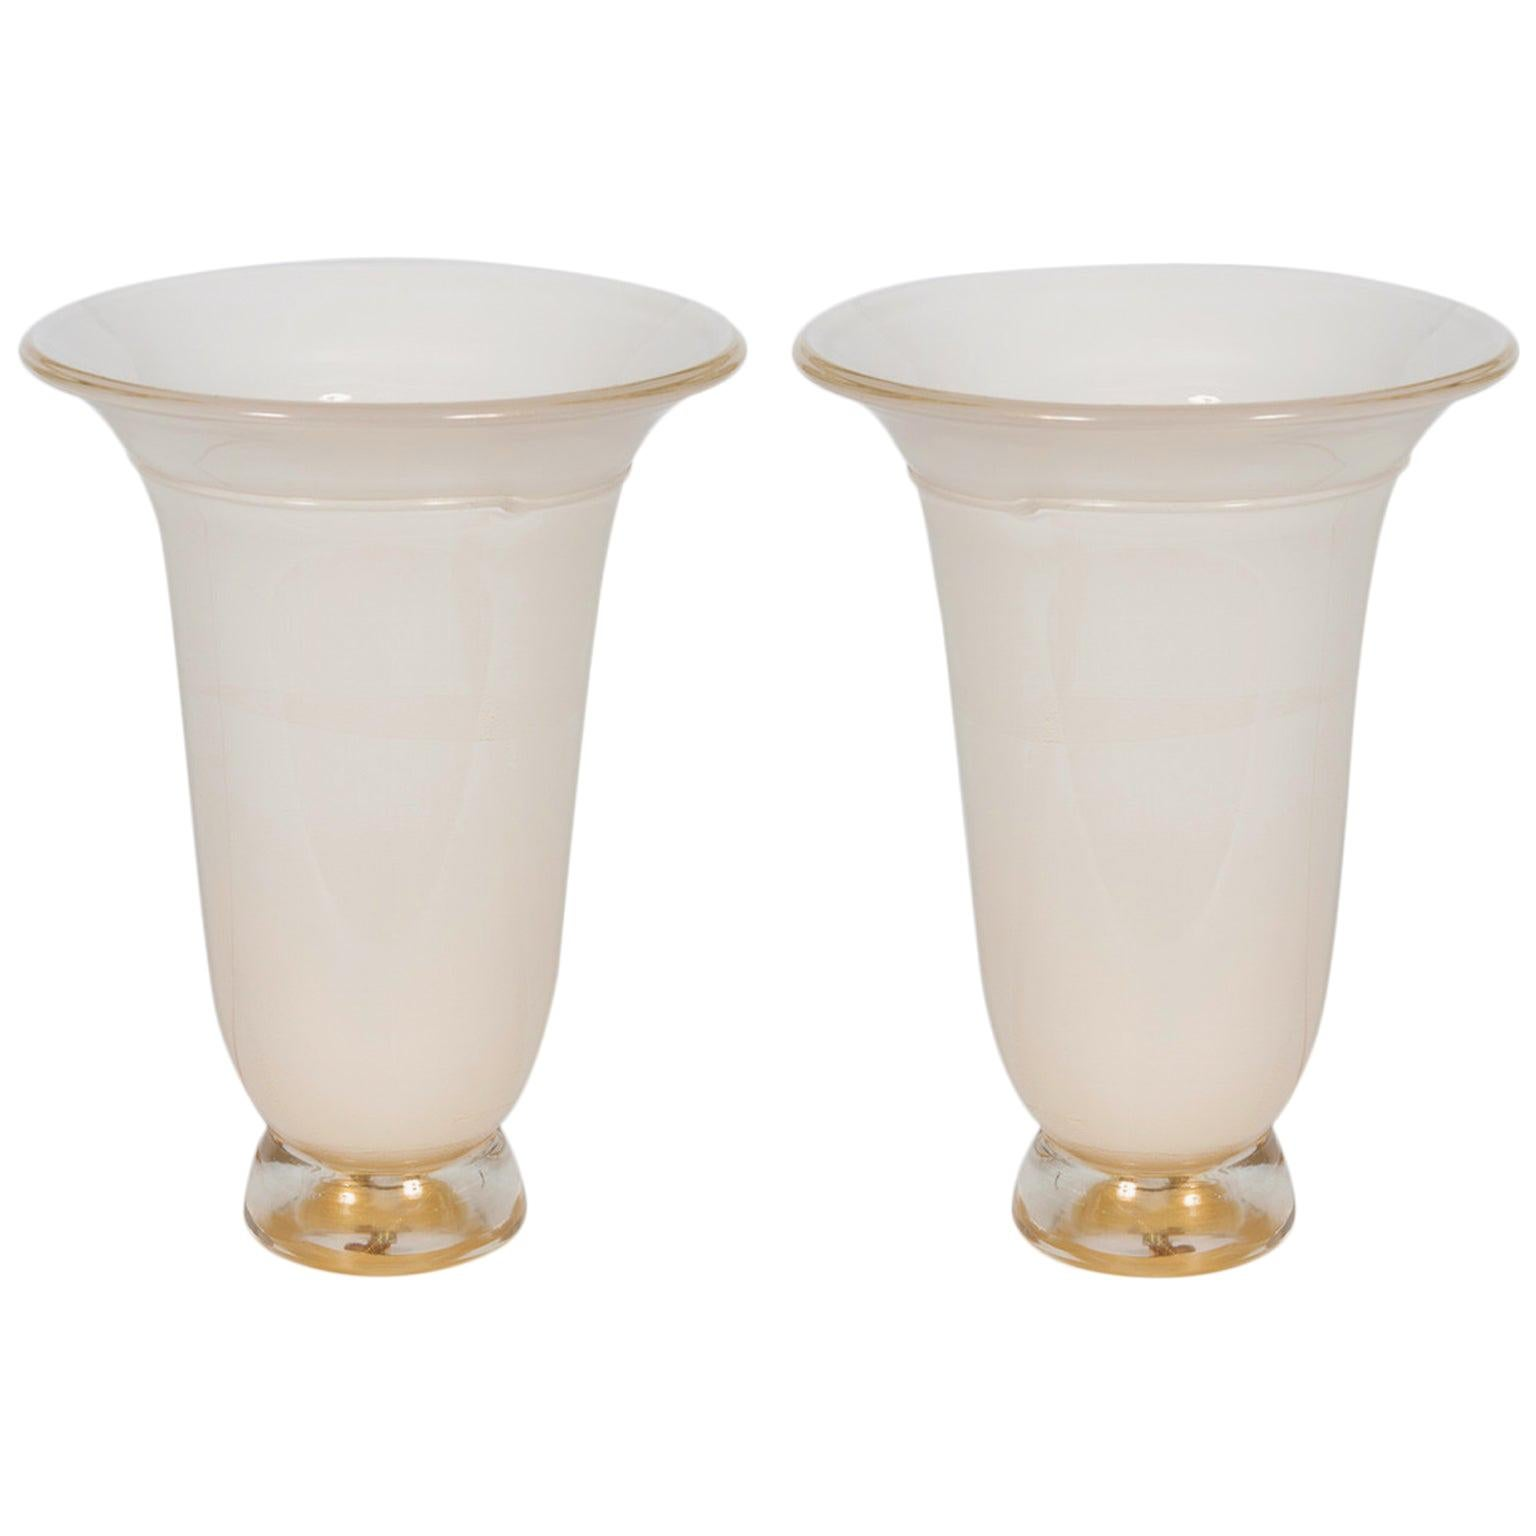 Italian Pair of Table Lamps in Blown Murano Glass White and Gold, 1980s